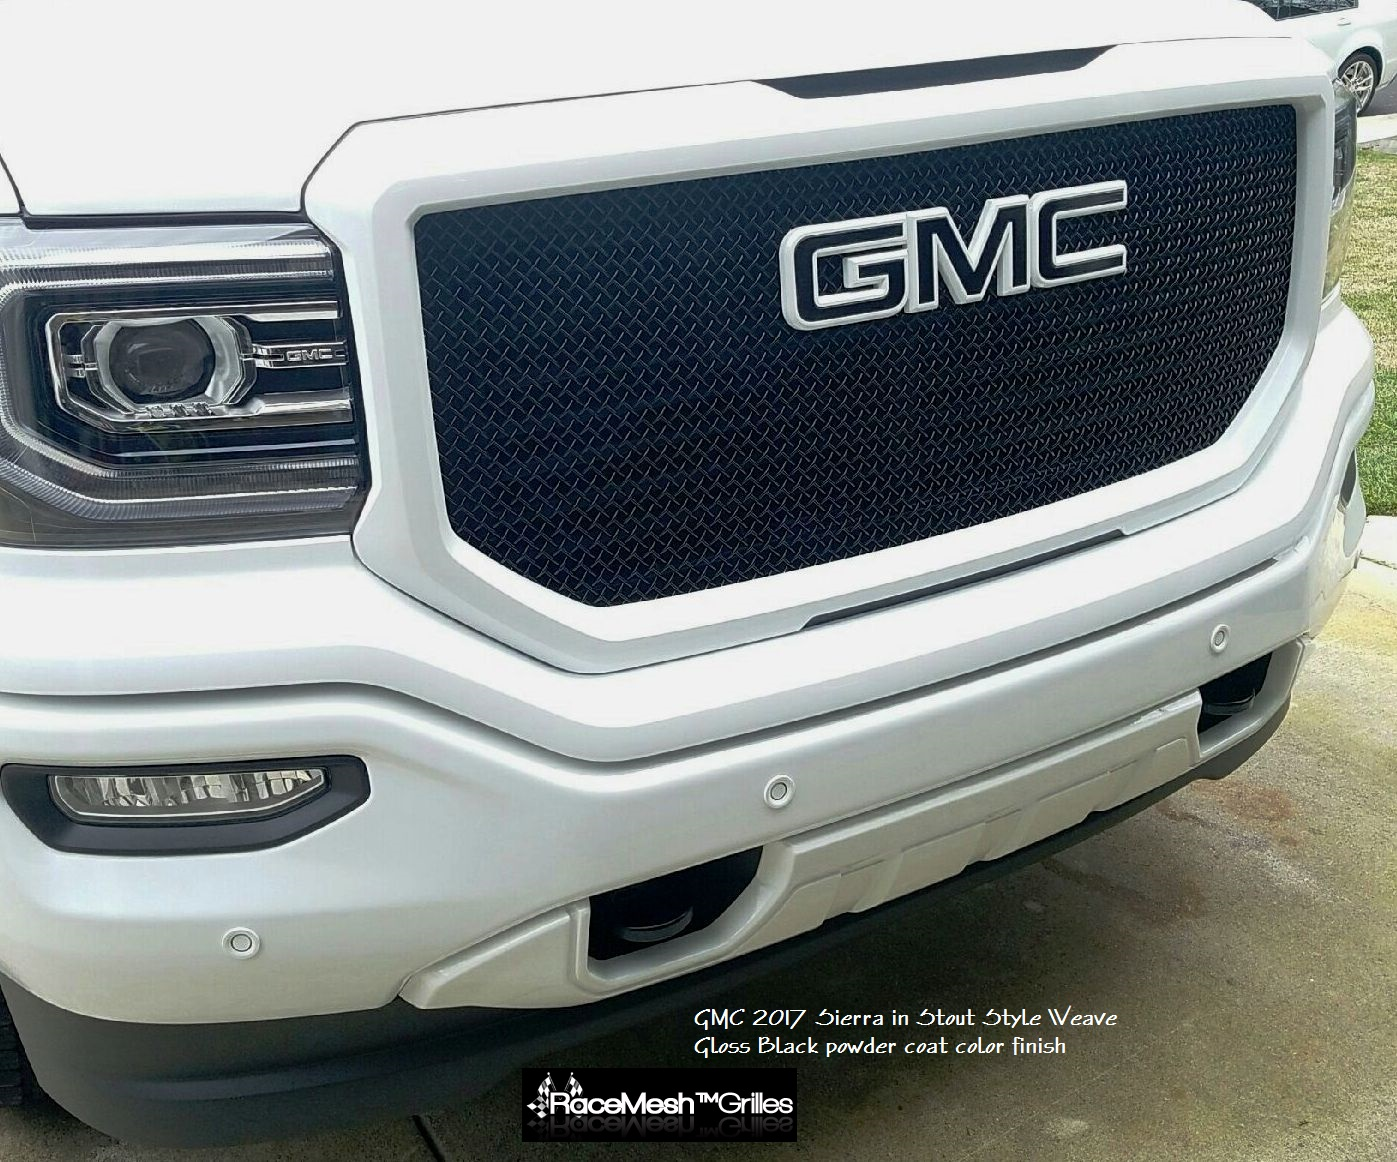 double trend sierra base front pick up and gmc cars angular motor reviews rating